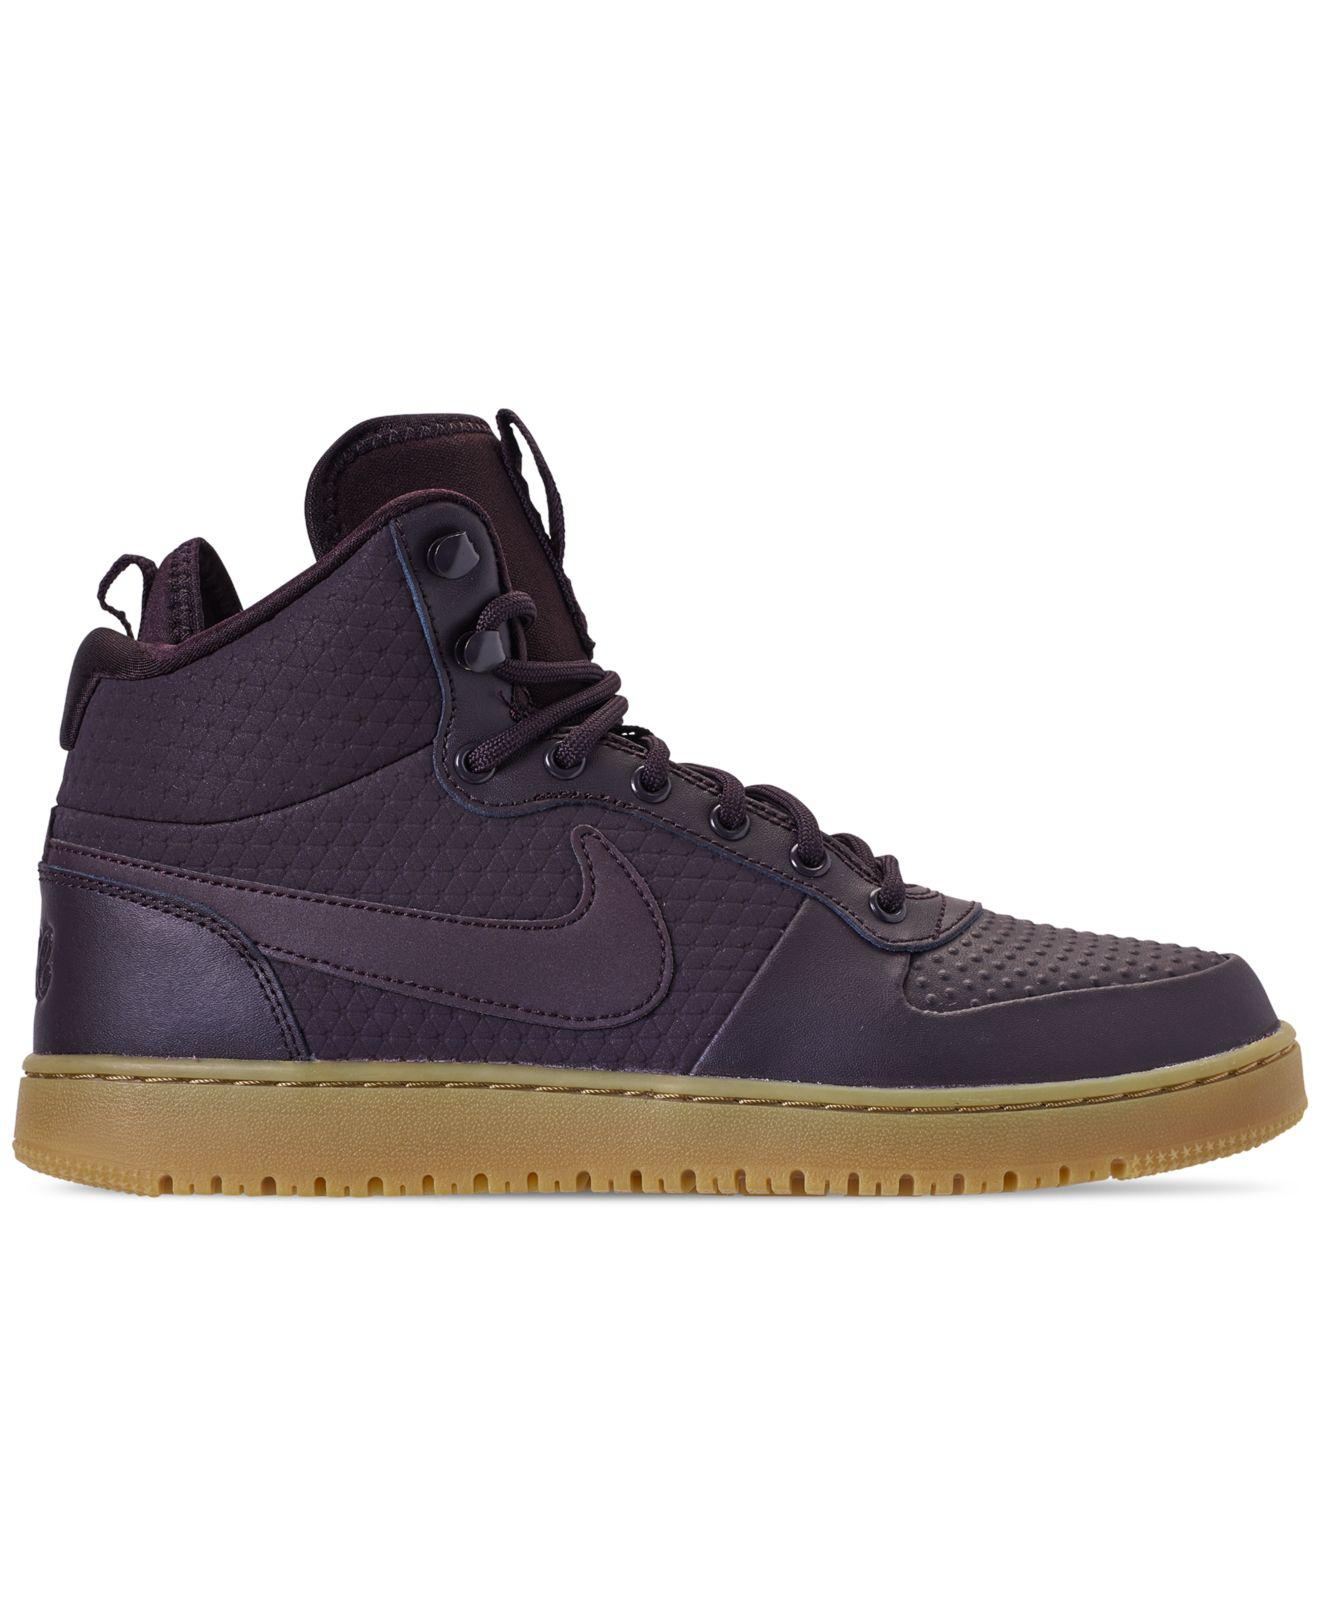 9ad09cf599 Lyst - Nike Ebernon Mid Winter Casual Sneakers From Finish Line in Blue for  Men - Save 12%